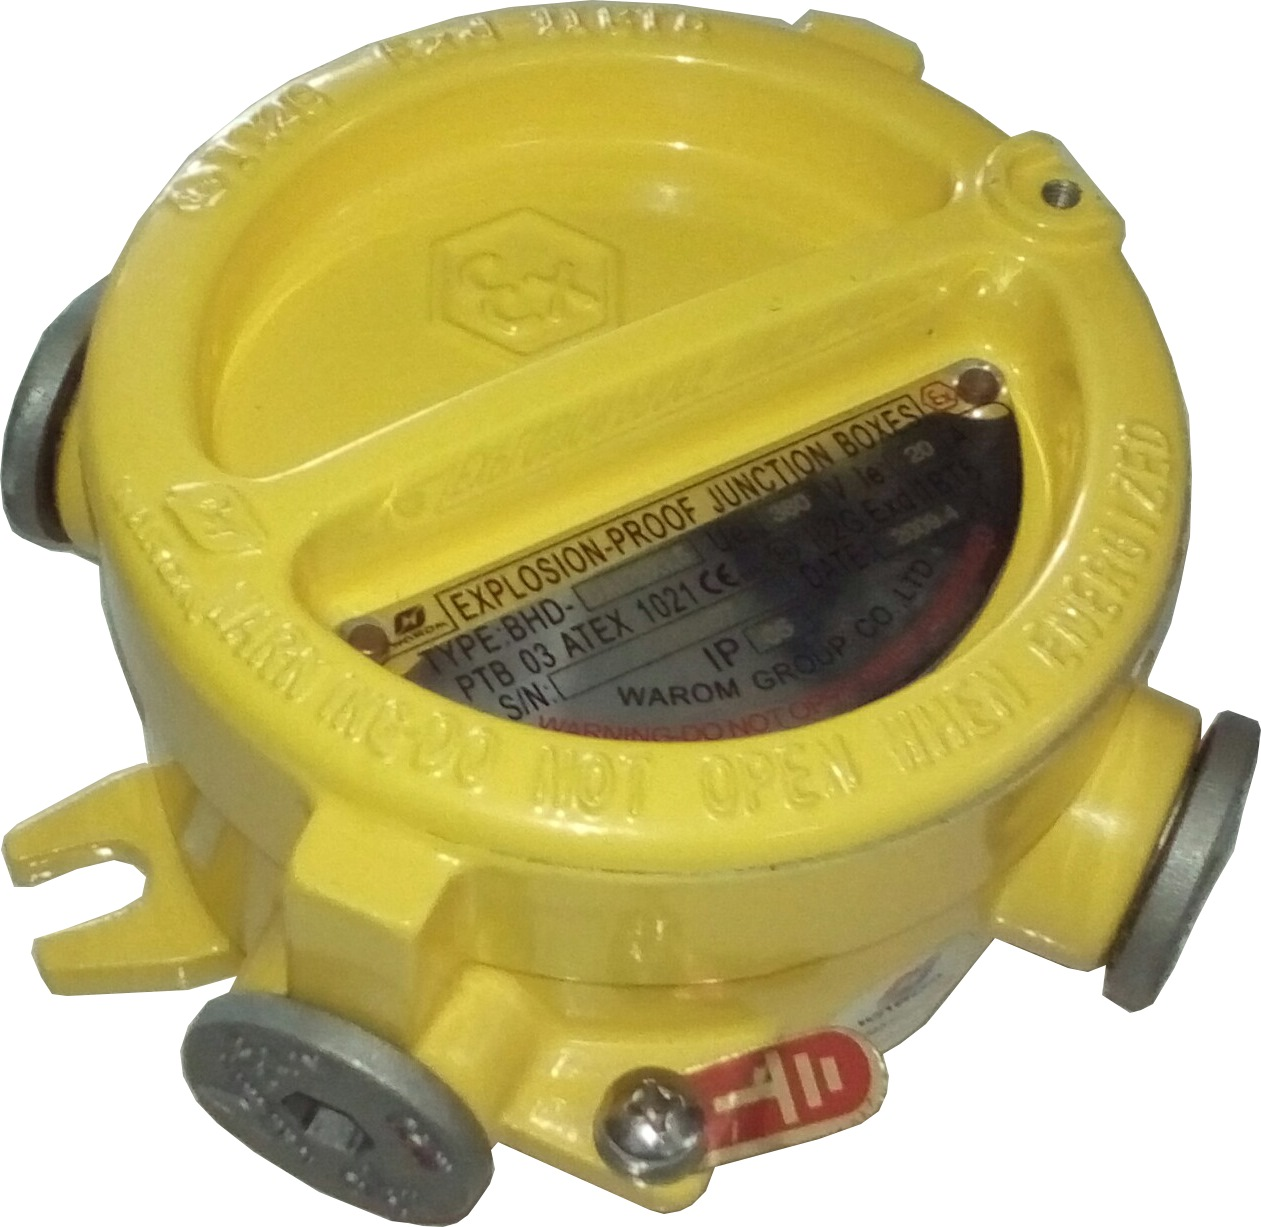 Warom Junction Box BHD51-D/M25 - Explosion Proof